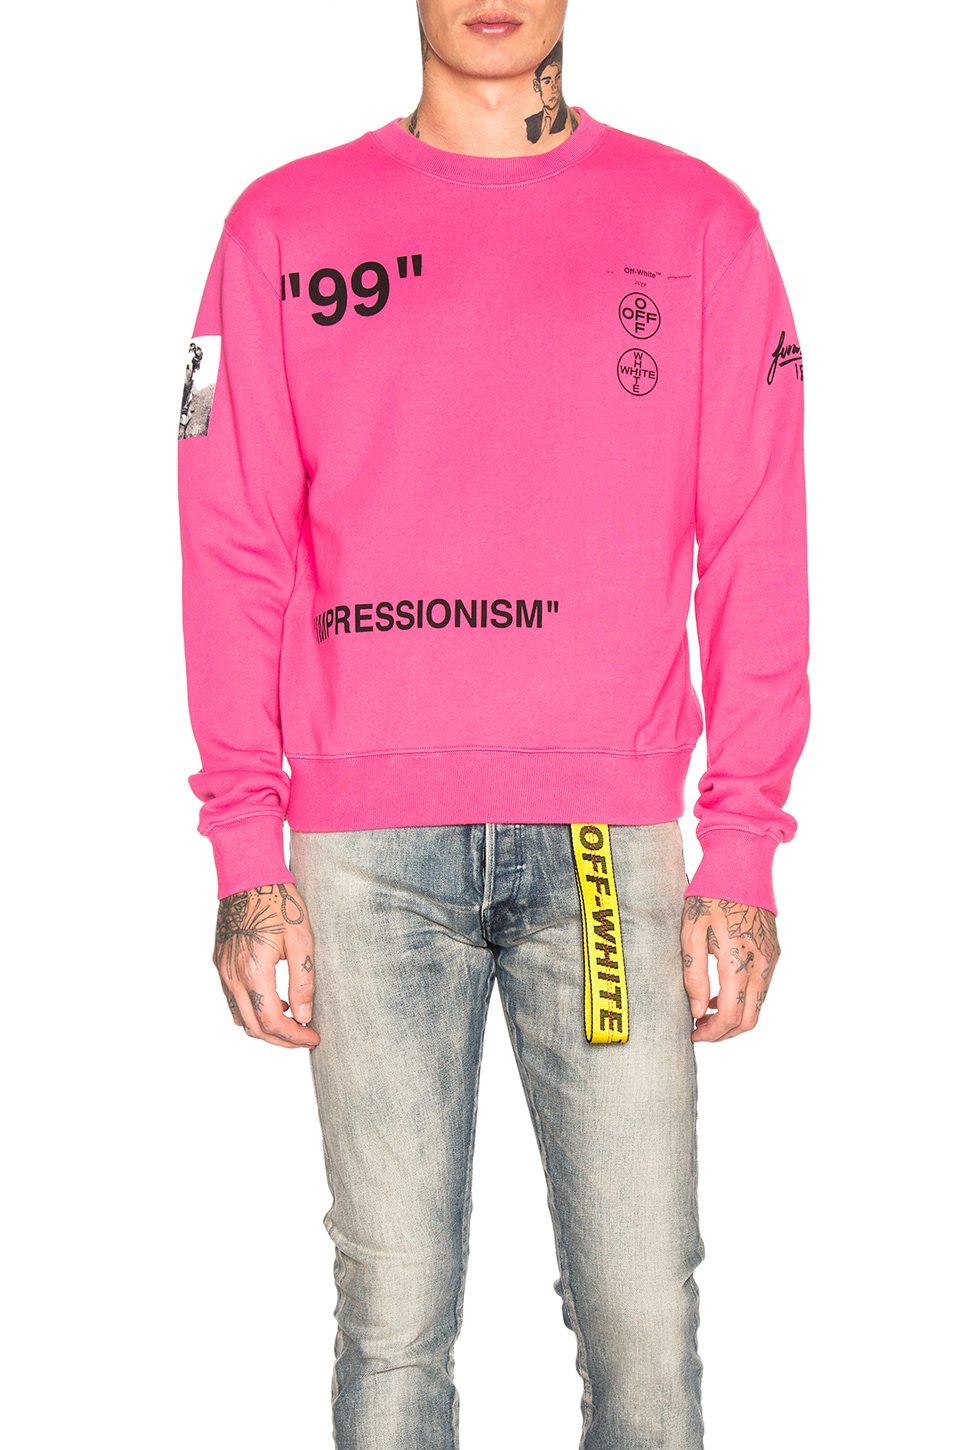 OFF-WHITE Boat Self Crewneck Sweatshirt in Fuchsia Multi